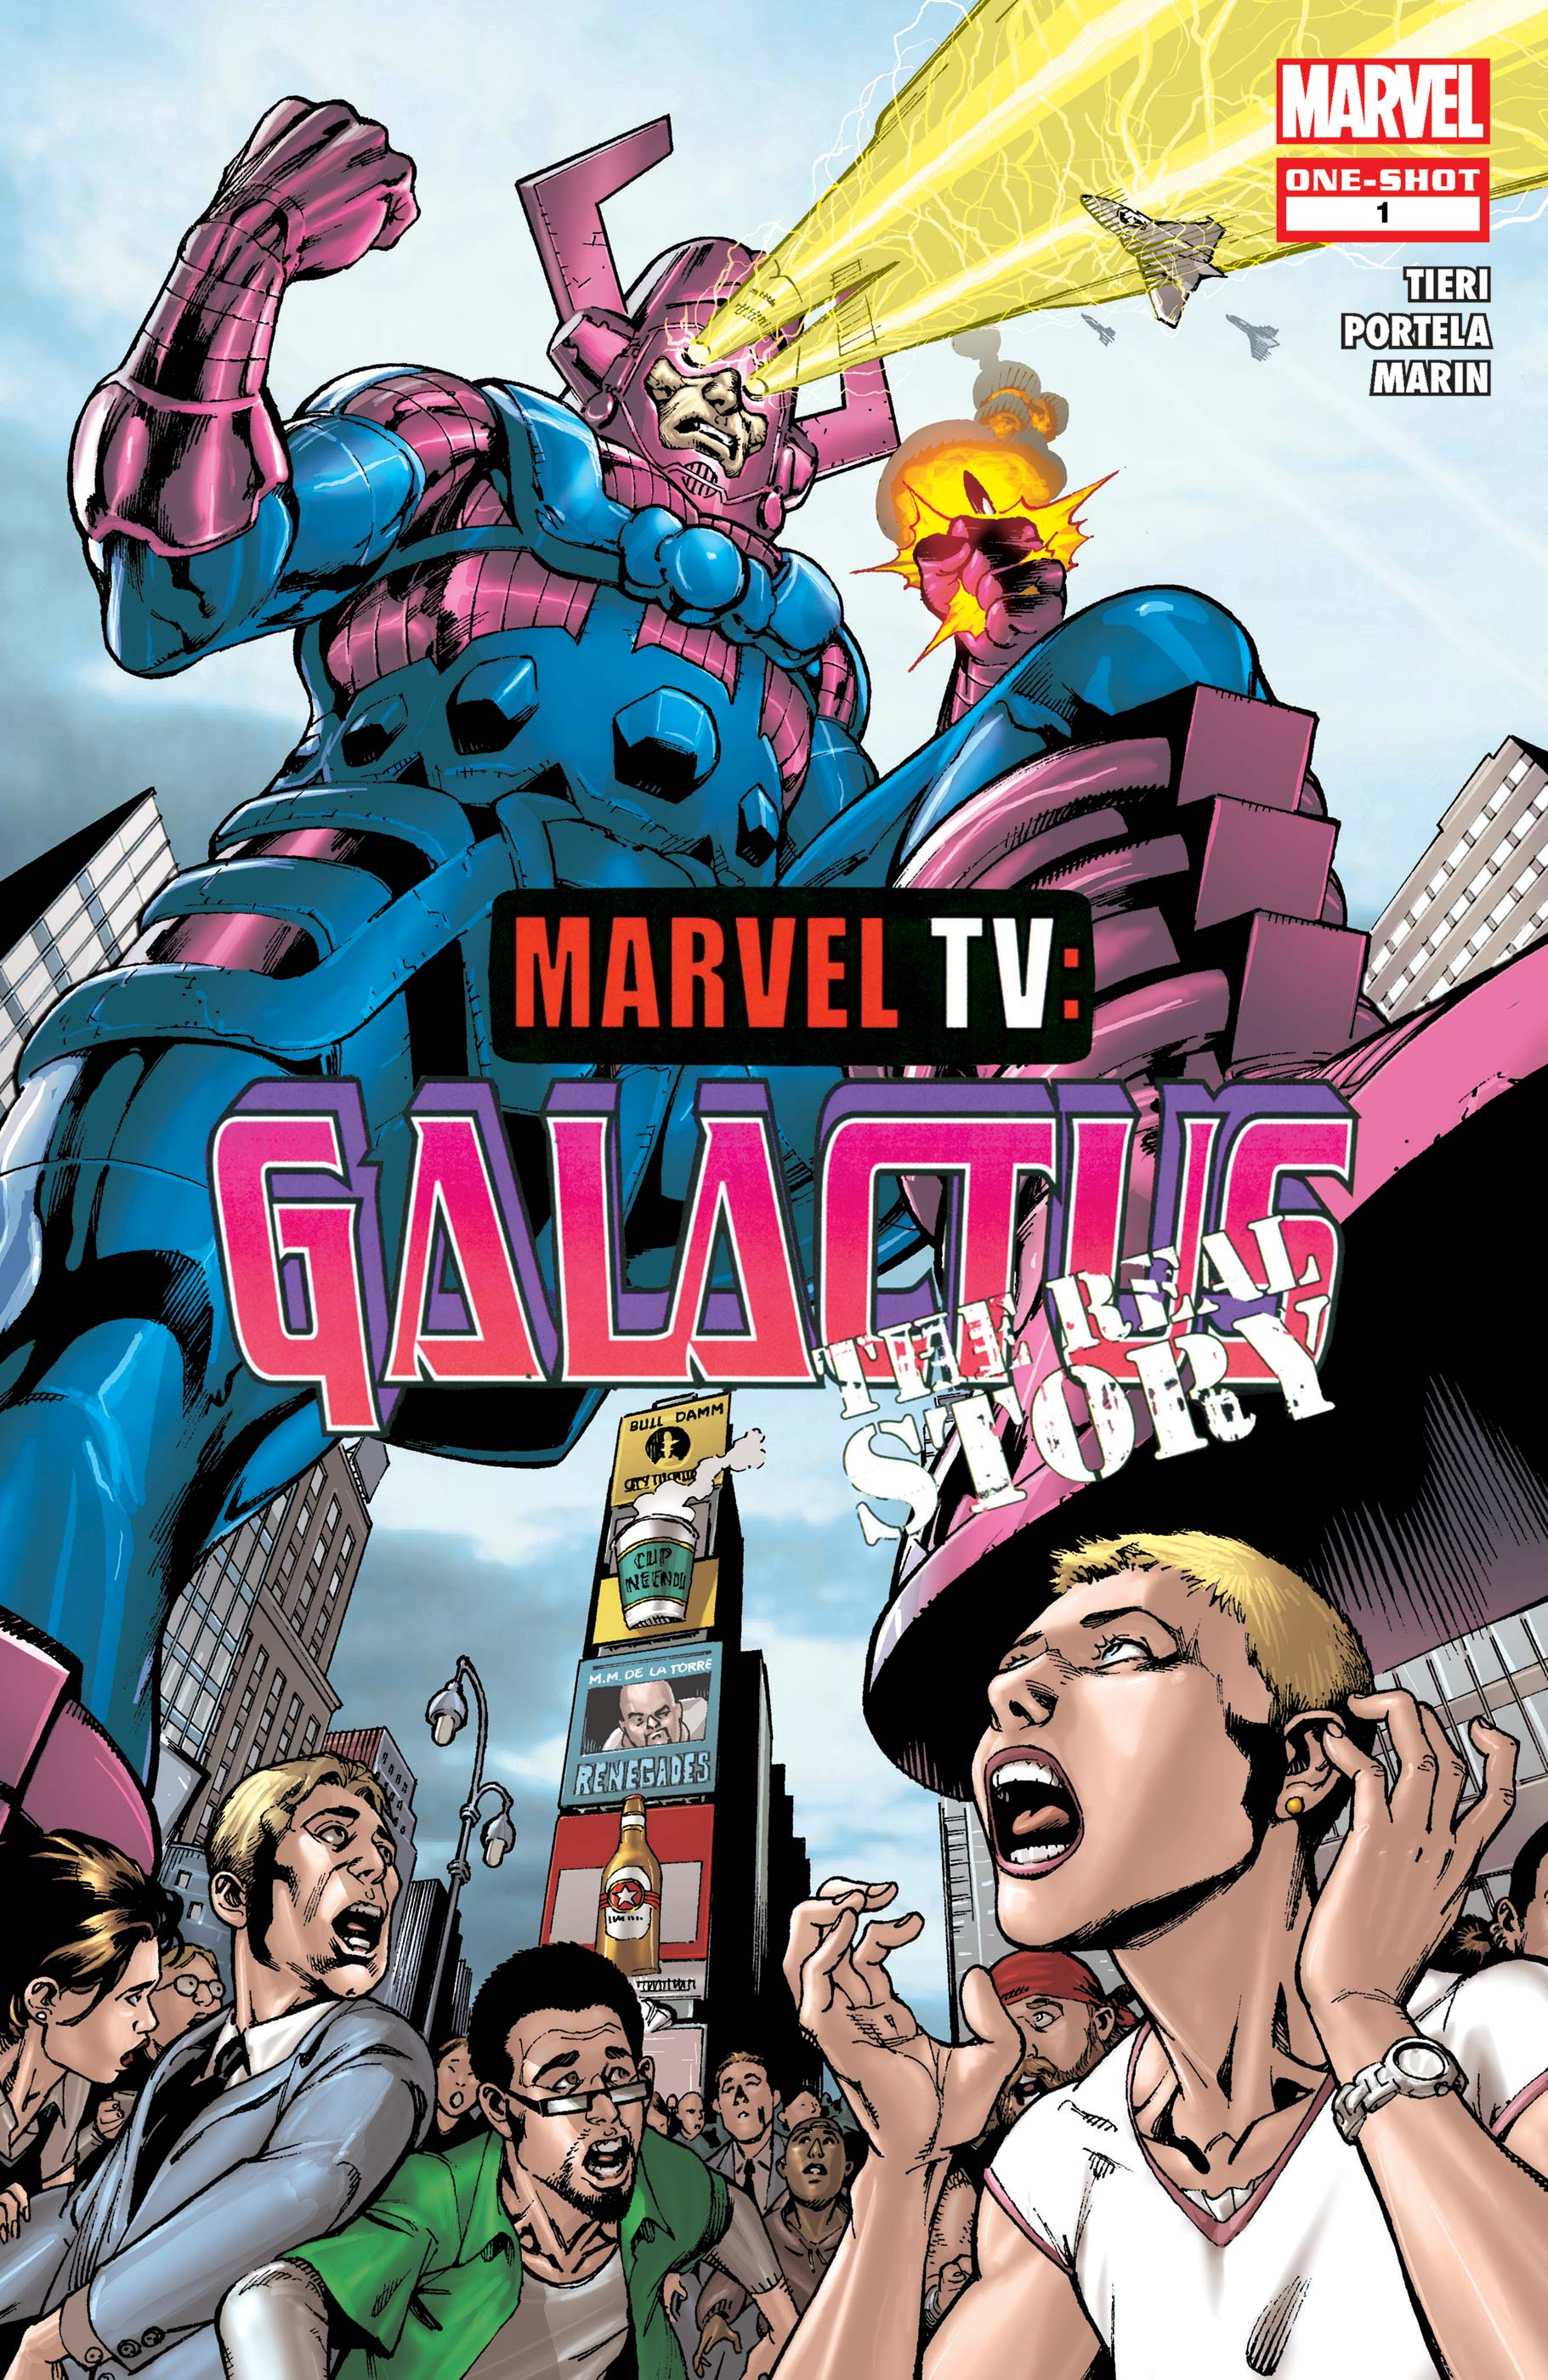 Marvel TV: Galactus - The Real Story (2009) #1